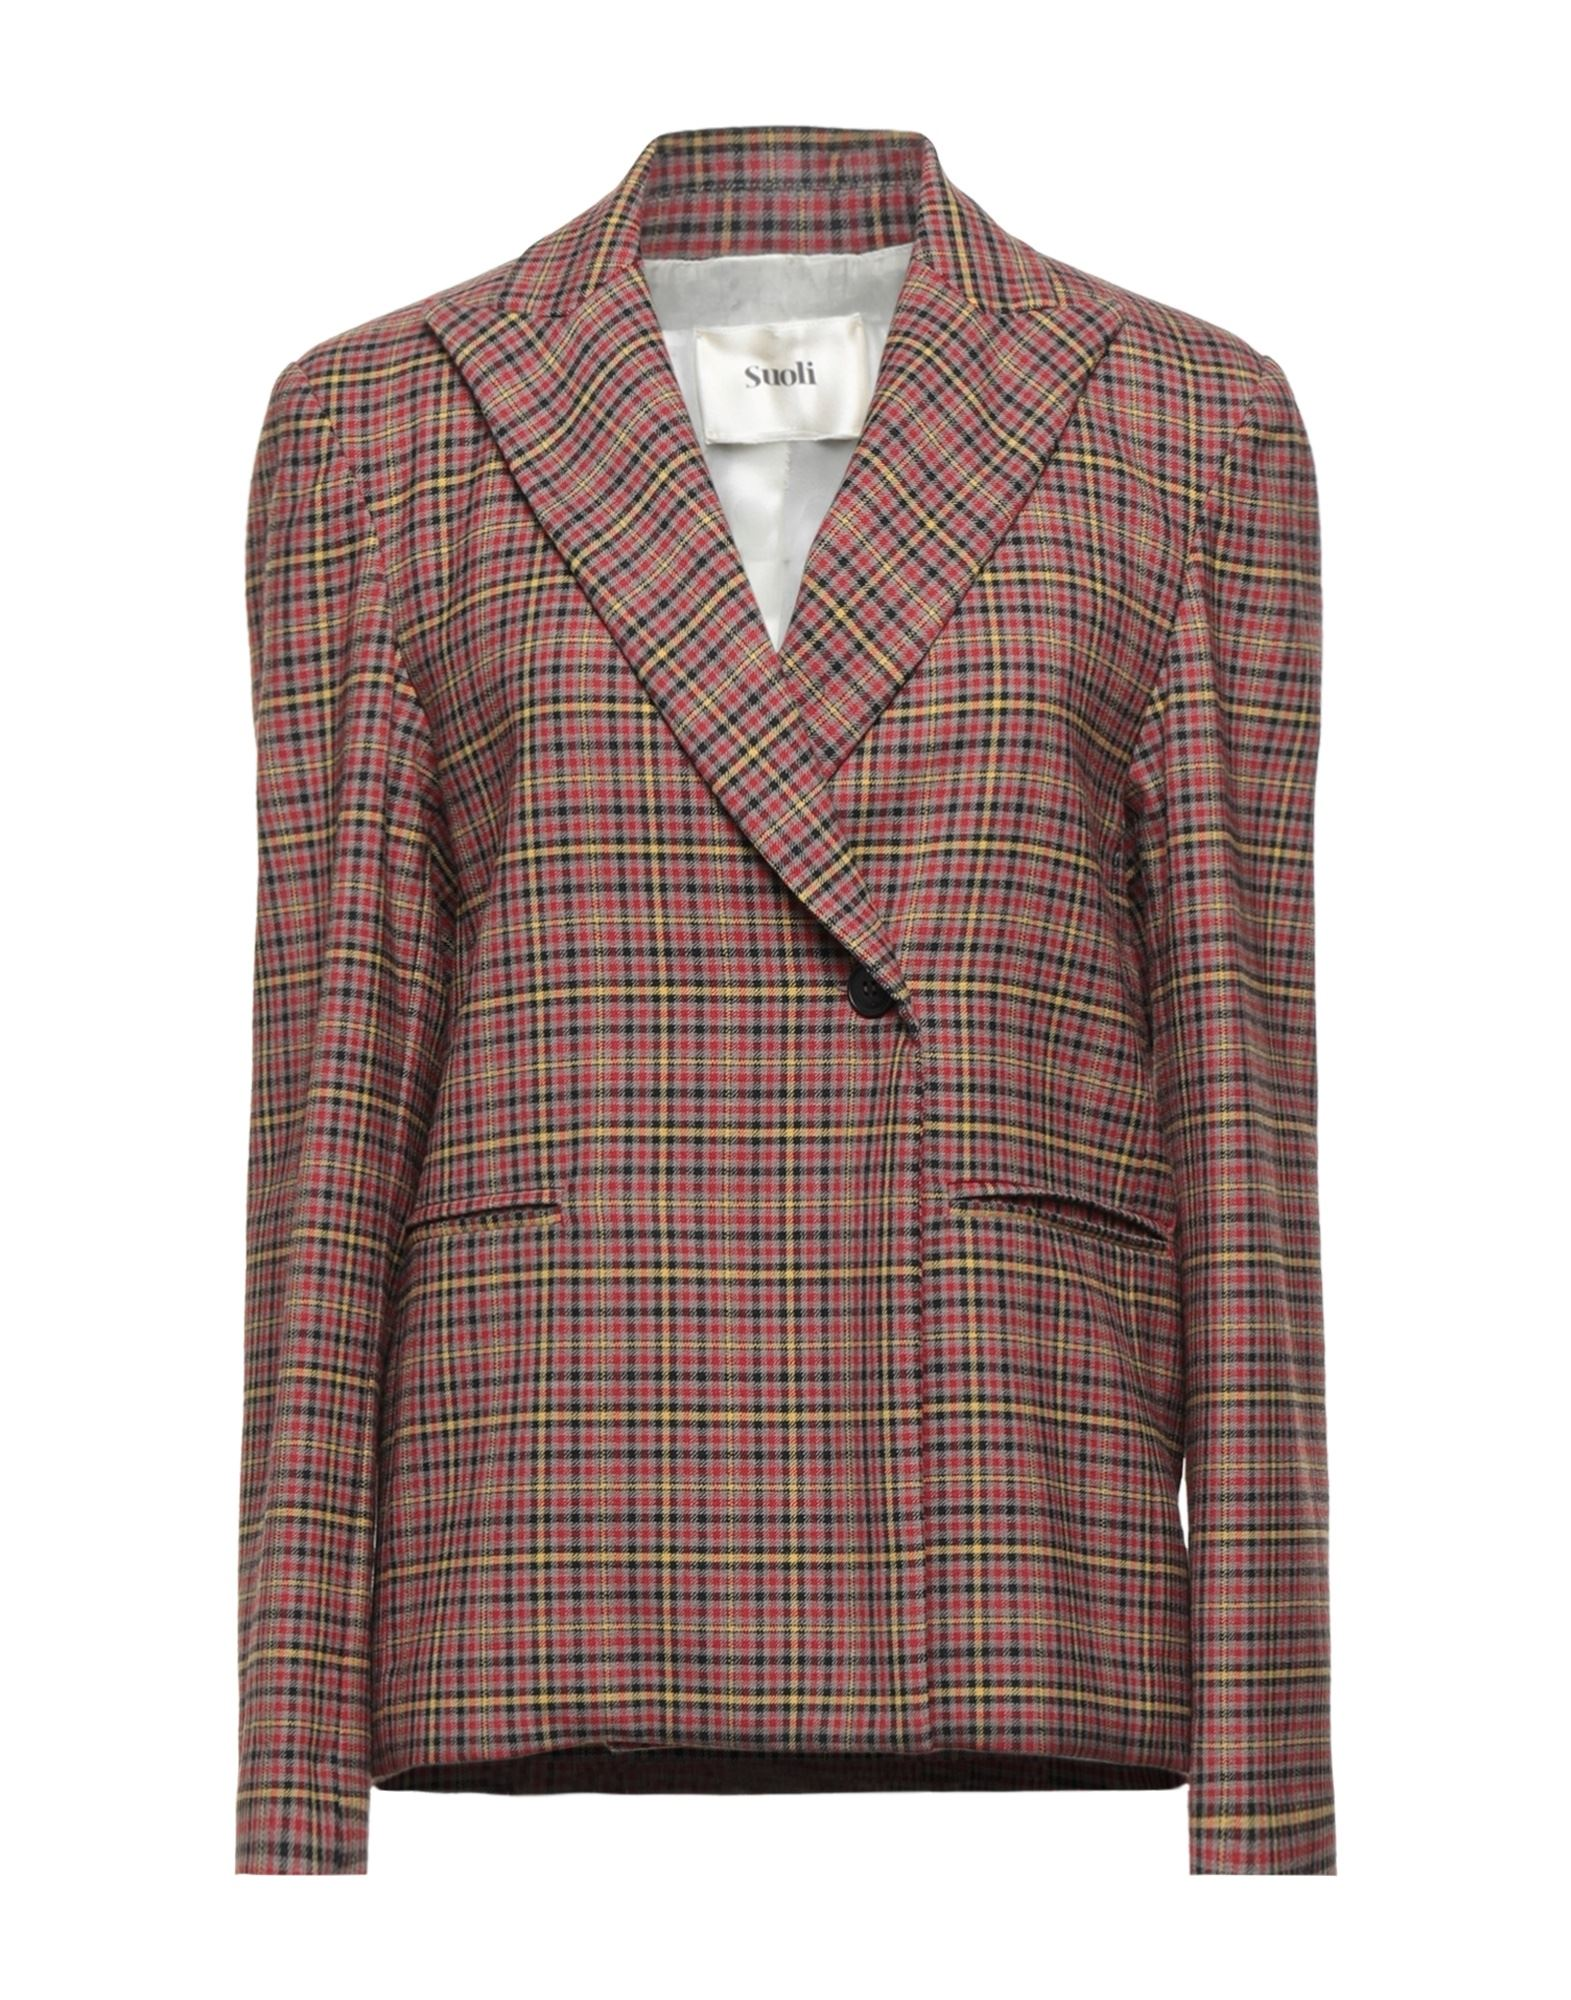 Suoli Suit Jackets In Brown